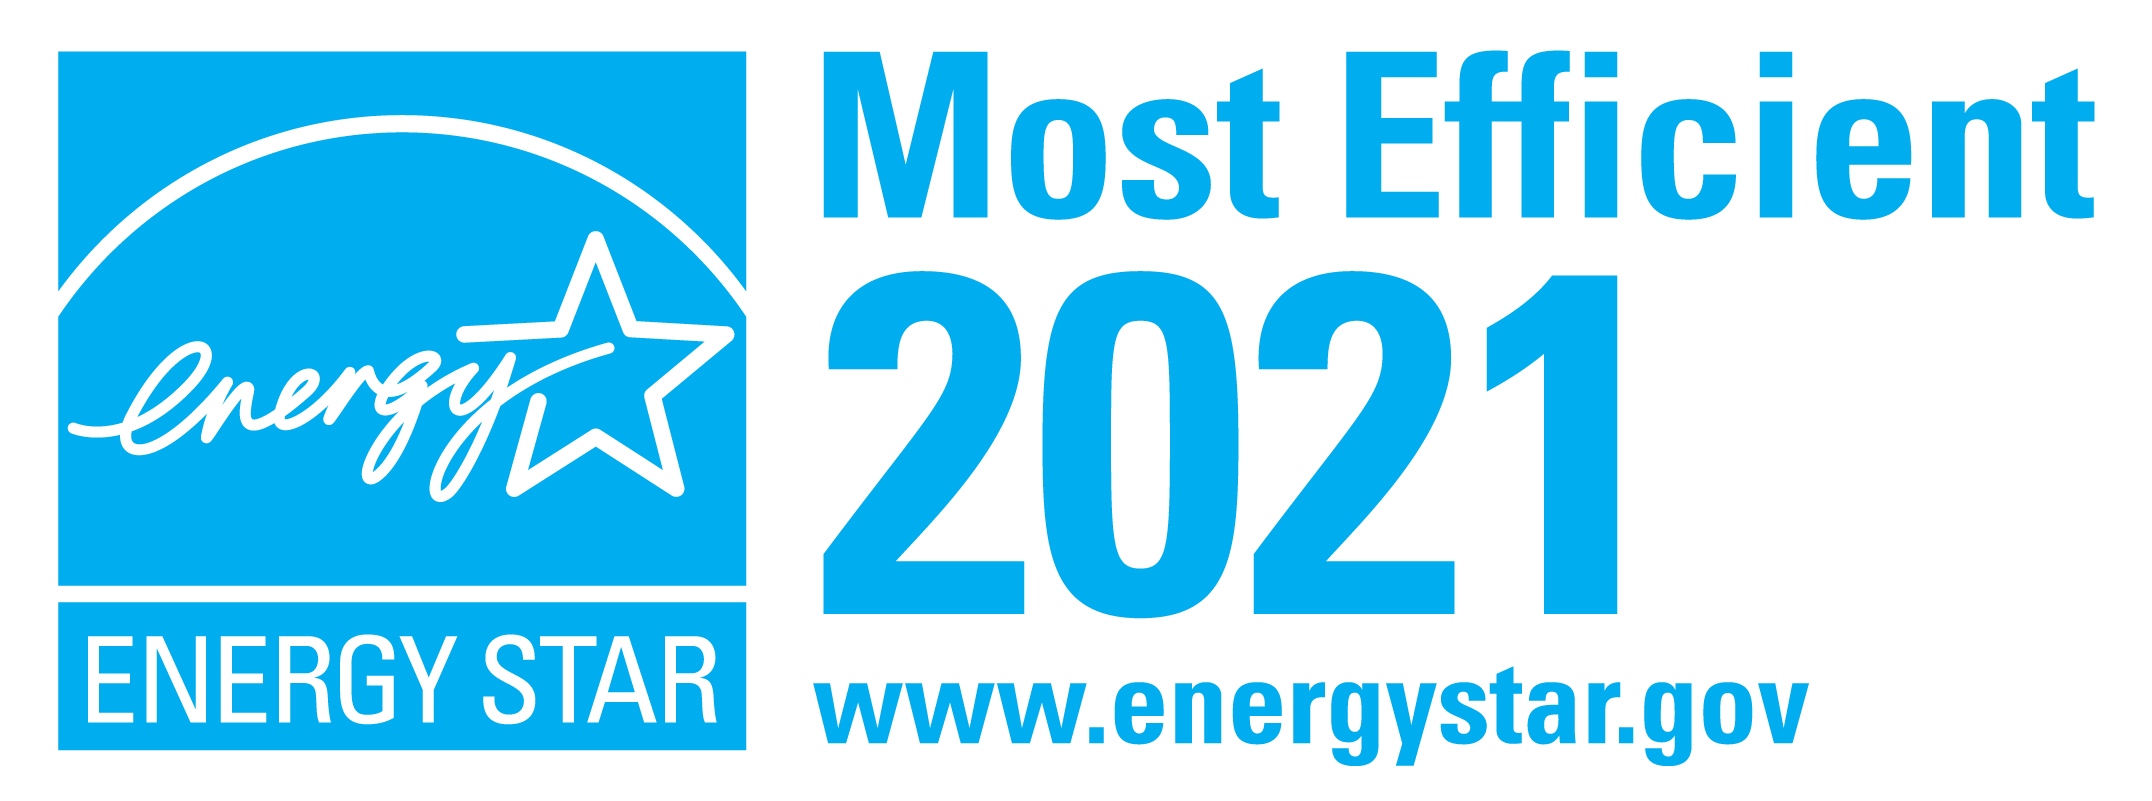 ENERGY STAR Most Efficient in 2020